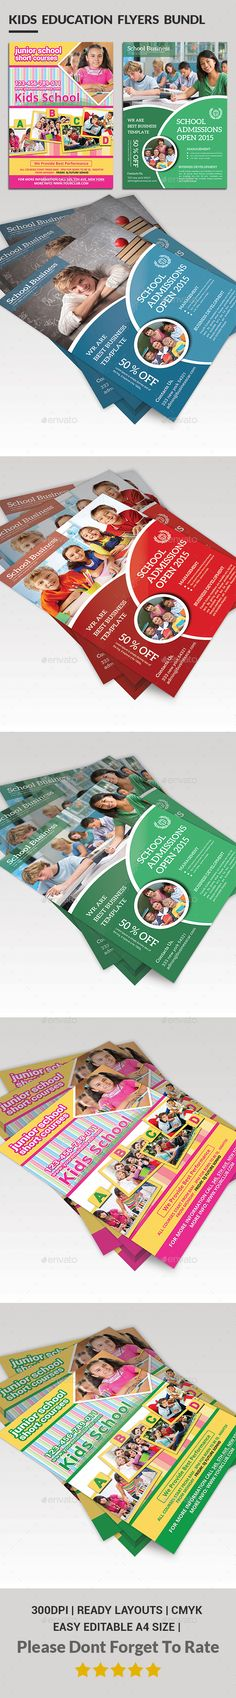 School Education Flyer Bundle Template PSD #design Download: http://graphicriver.net/item/school-education-flyer-bundle/13559806?ref=ksioks